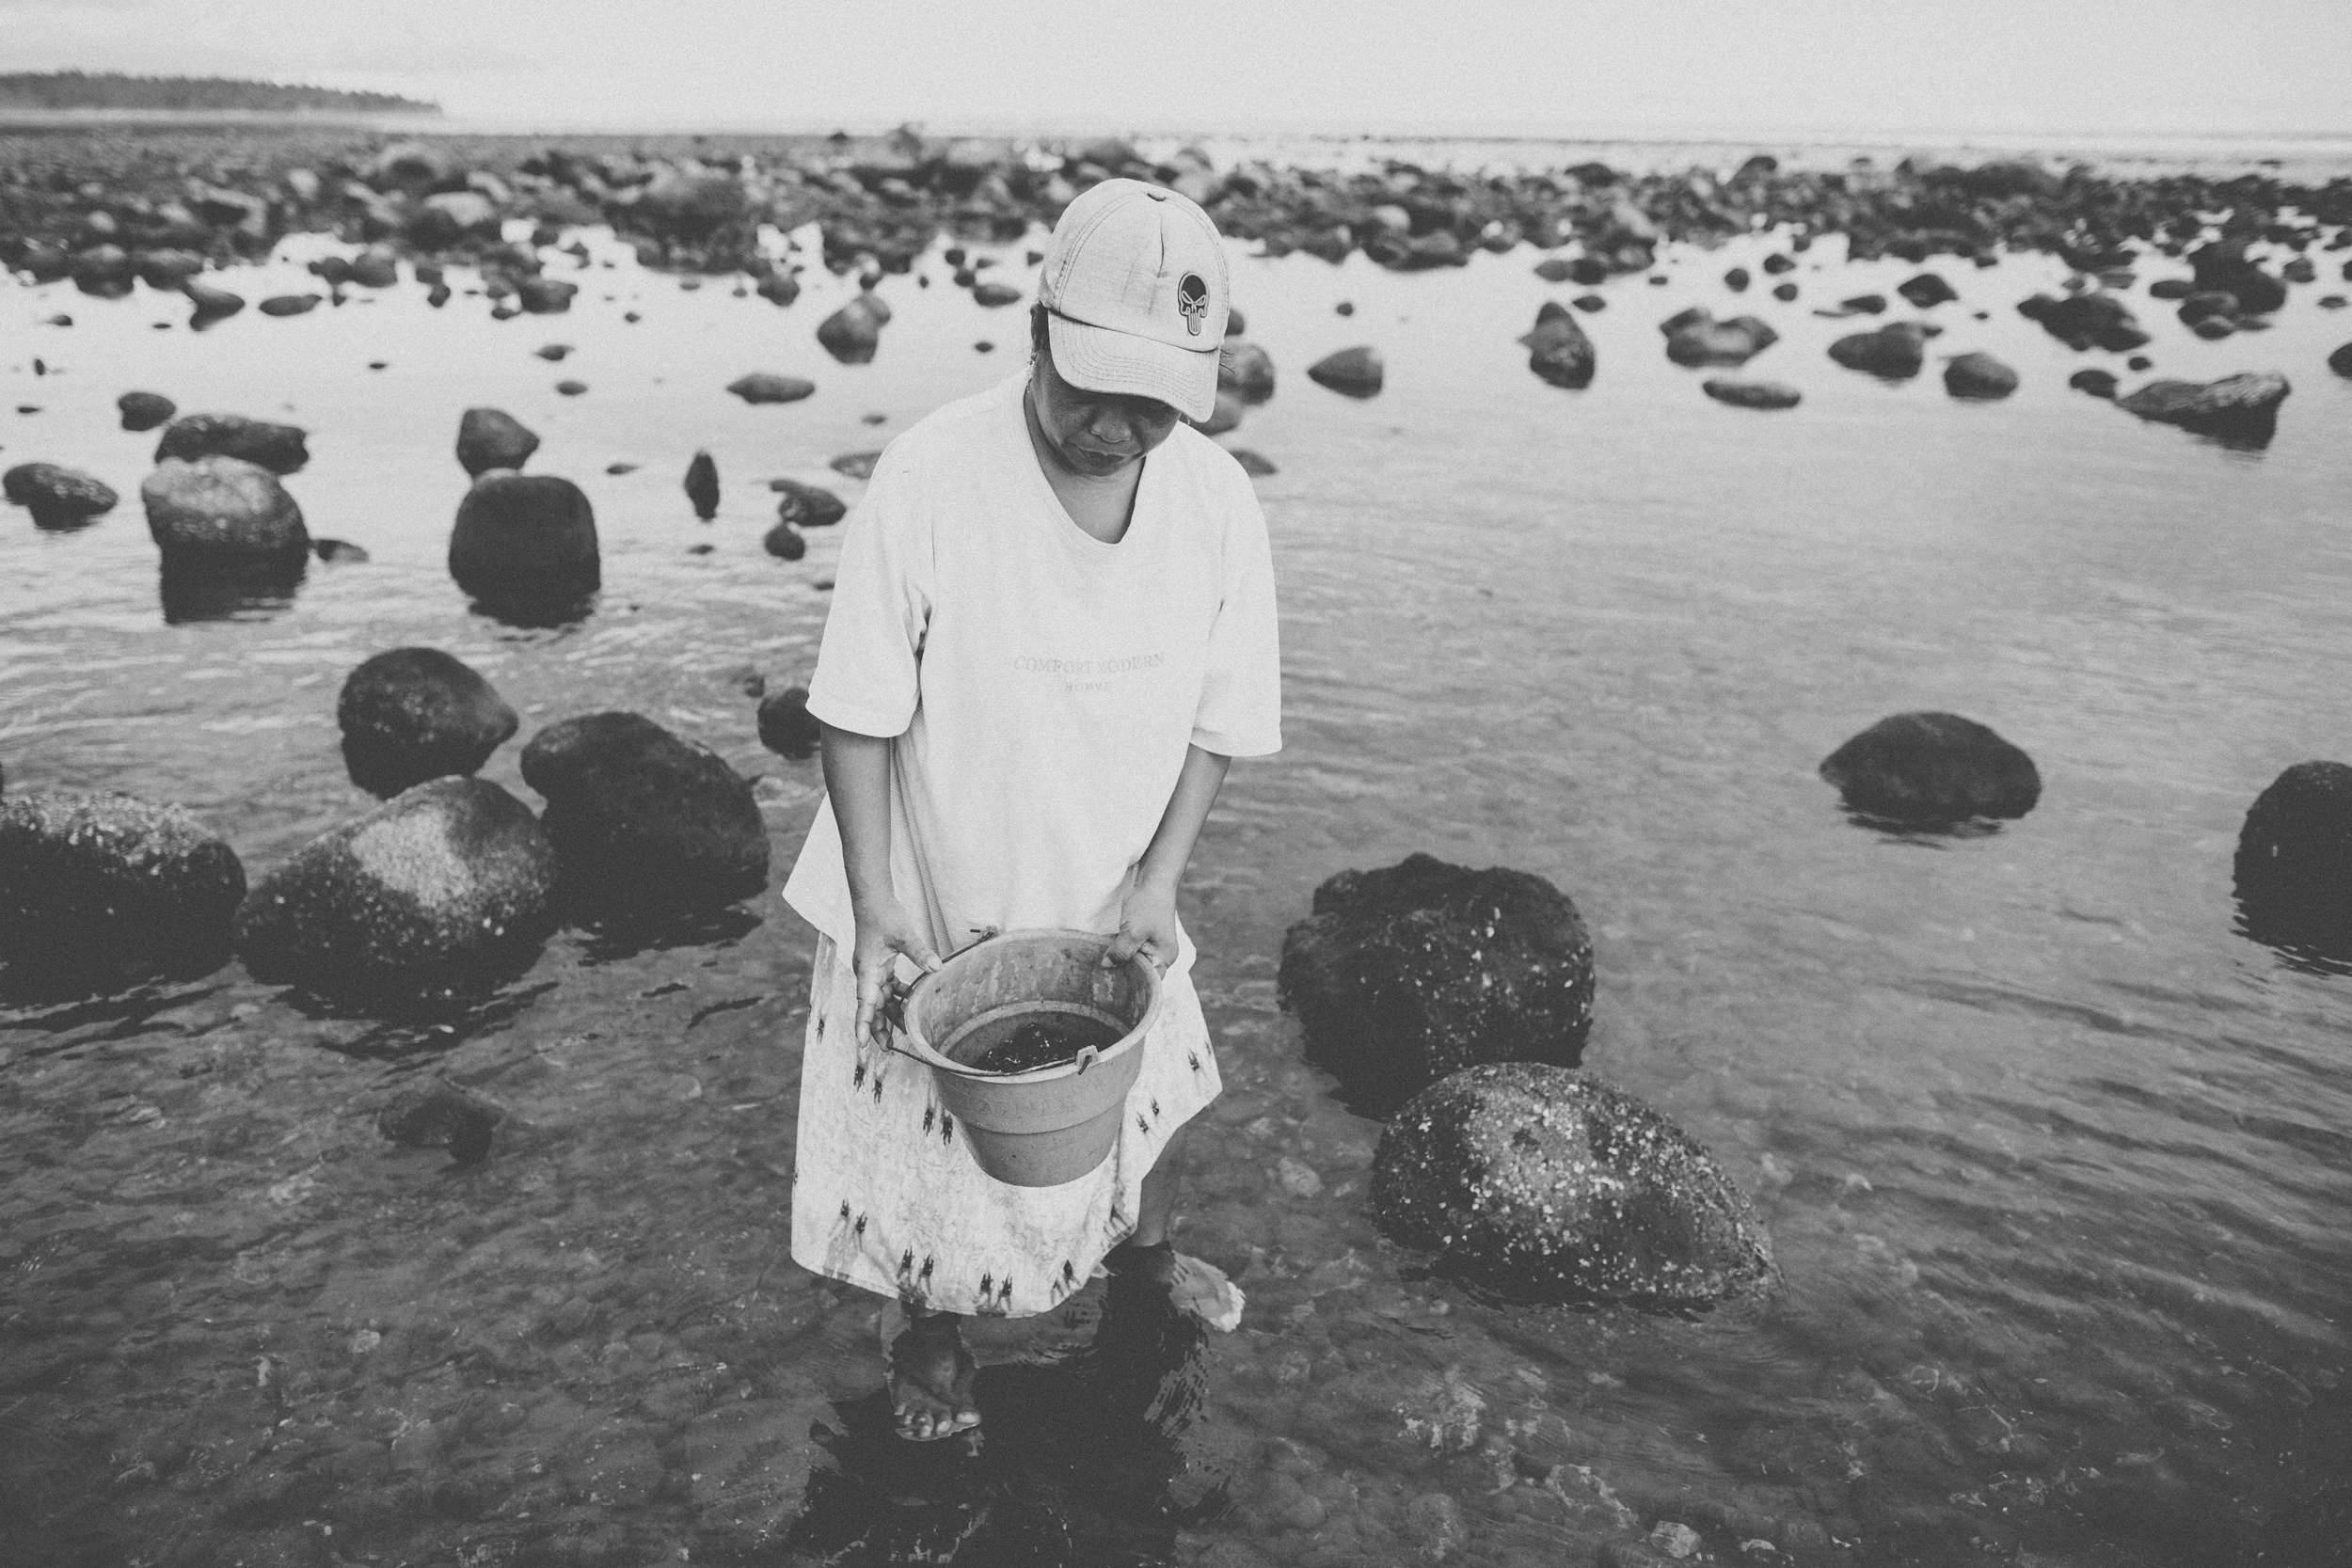 Bali_Indonesia_photo_journalism_shellfish_collecting_global_eyes_media_014.jpg